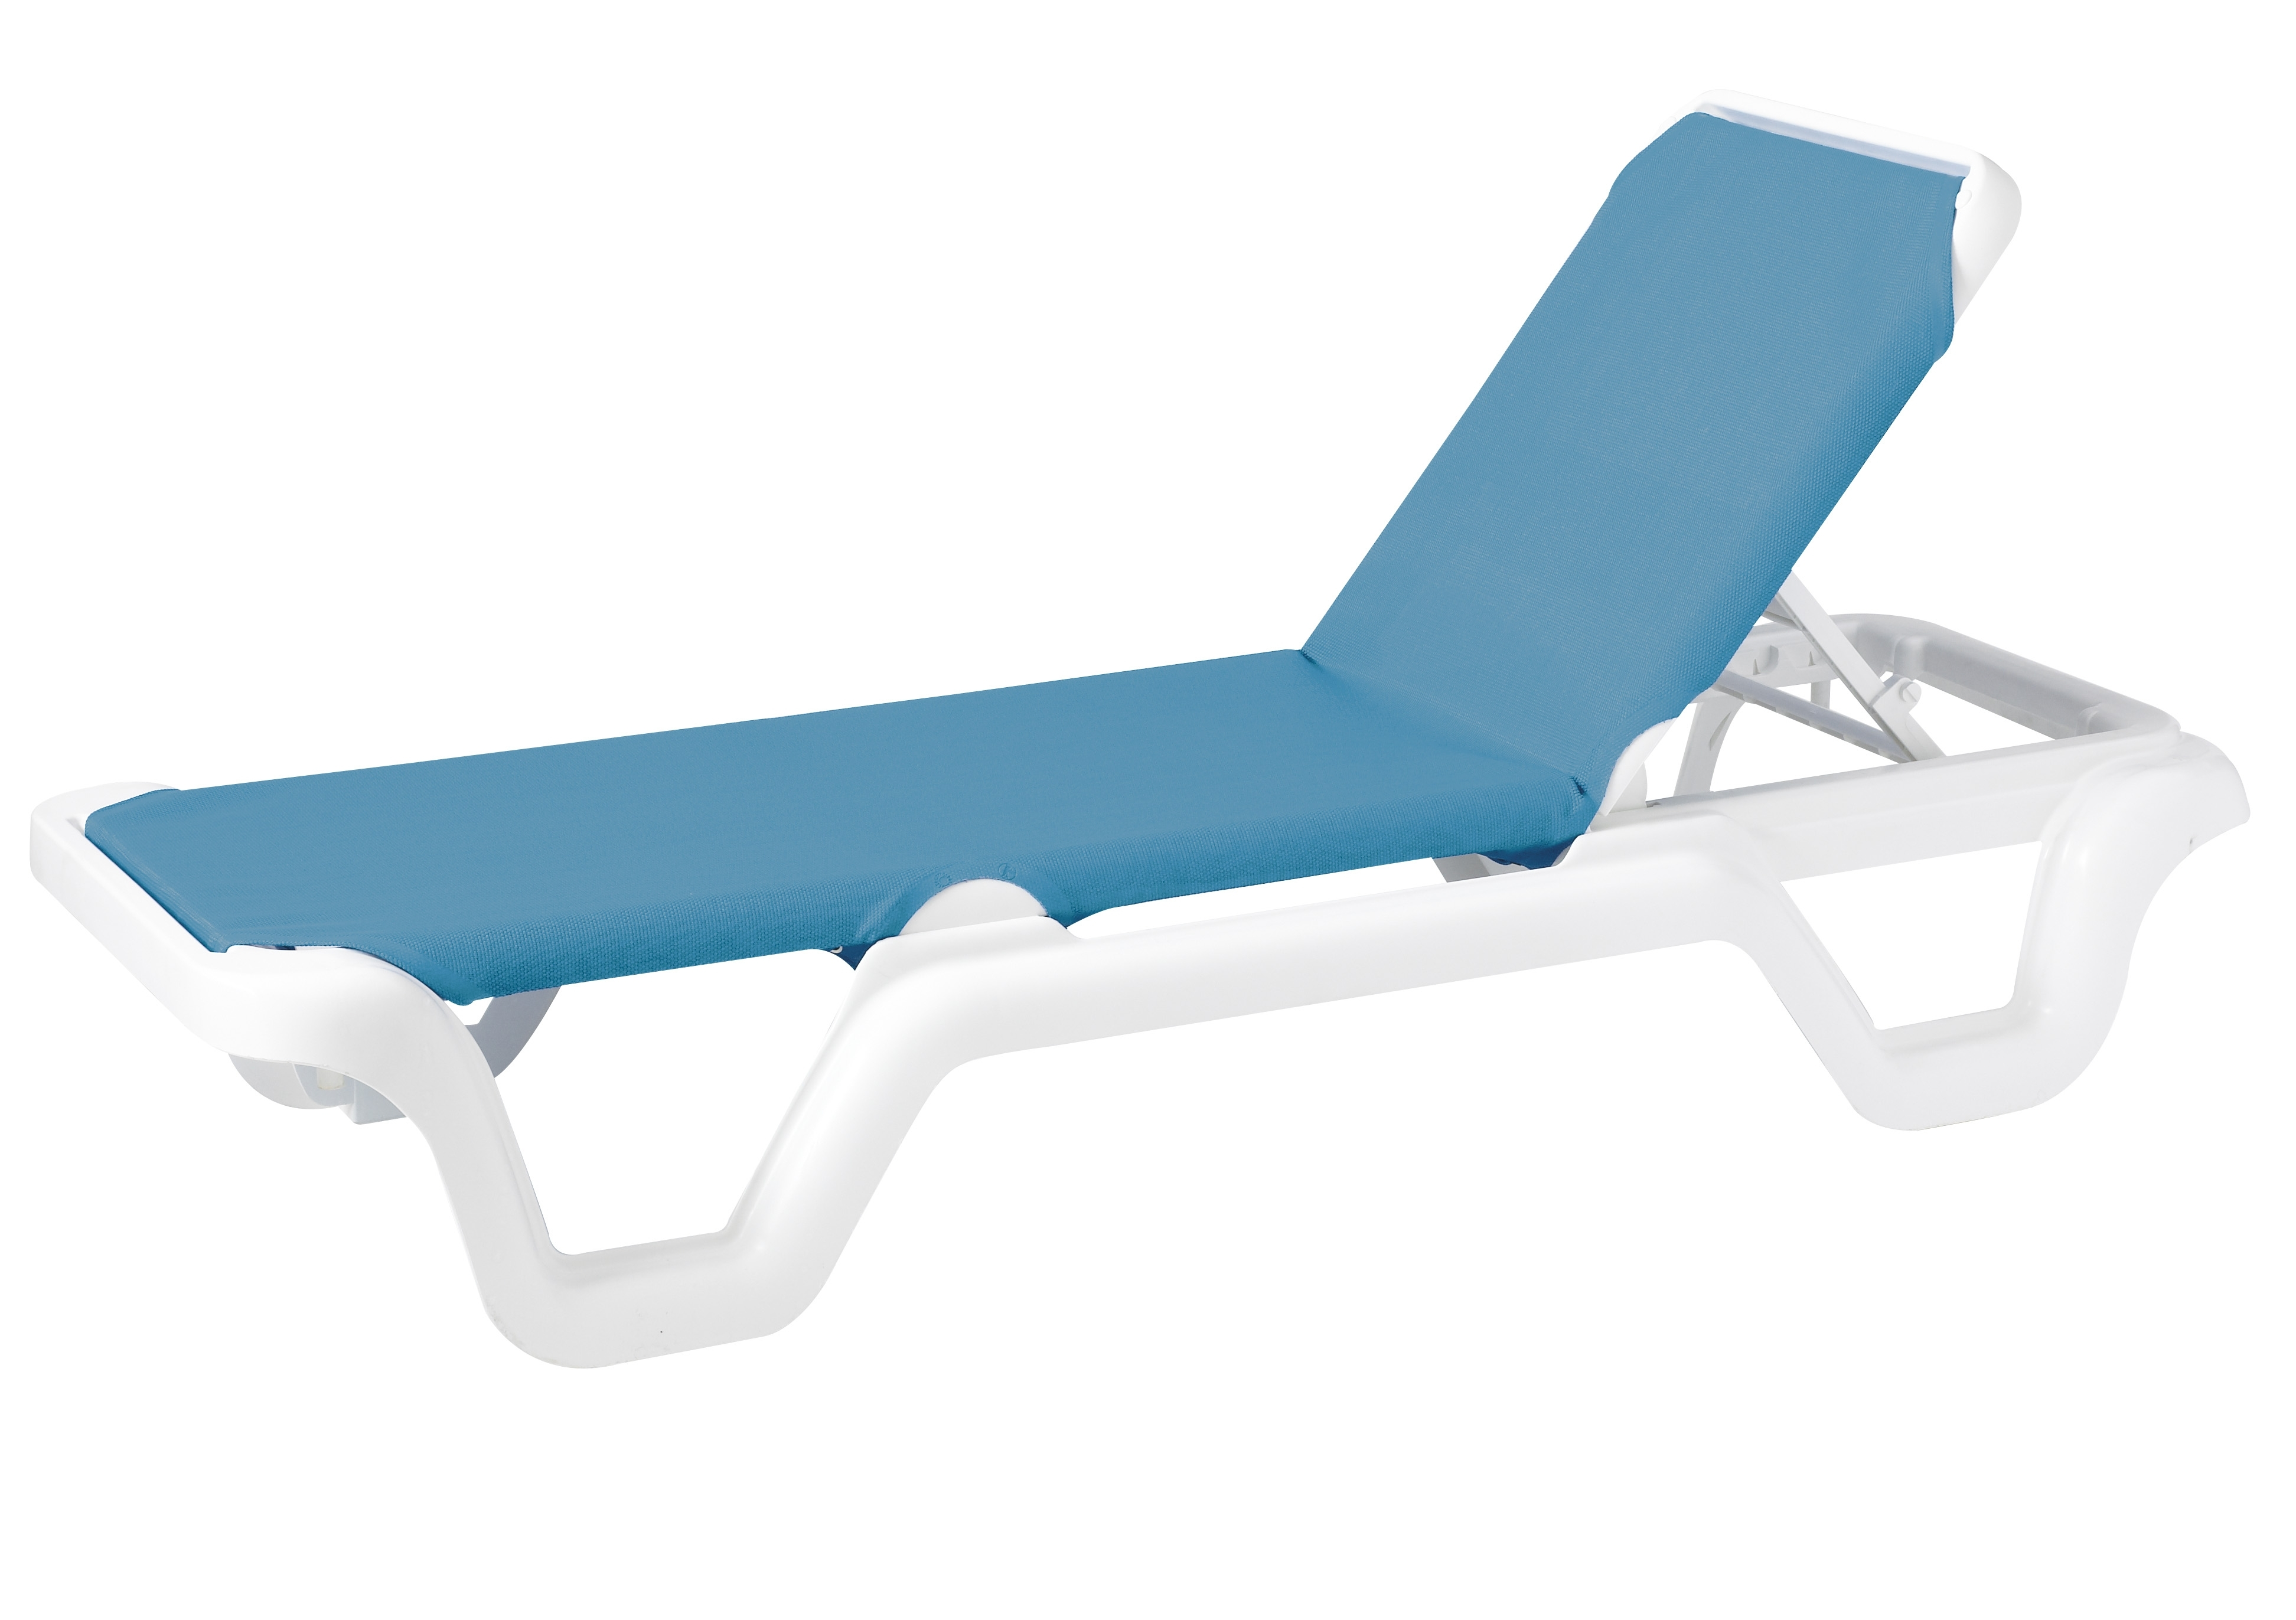 Sling Chaise Lounge Chairs For Outdoor Throughout Most Recently Released Grosfillex Marina Style Resin Sling Chaise Lounge Chair W/o Arms (View 4 of 15)